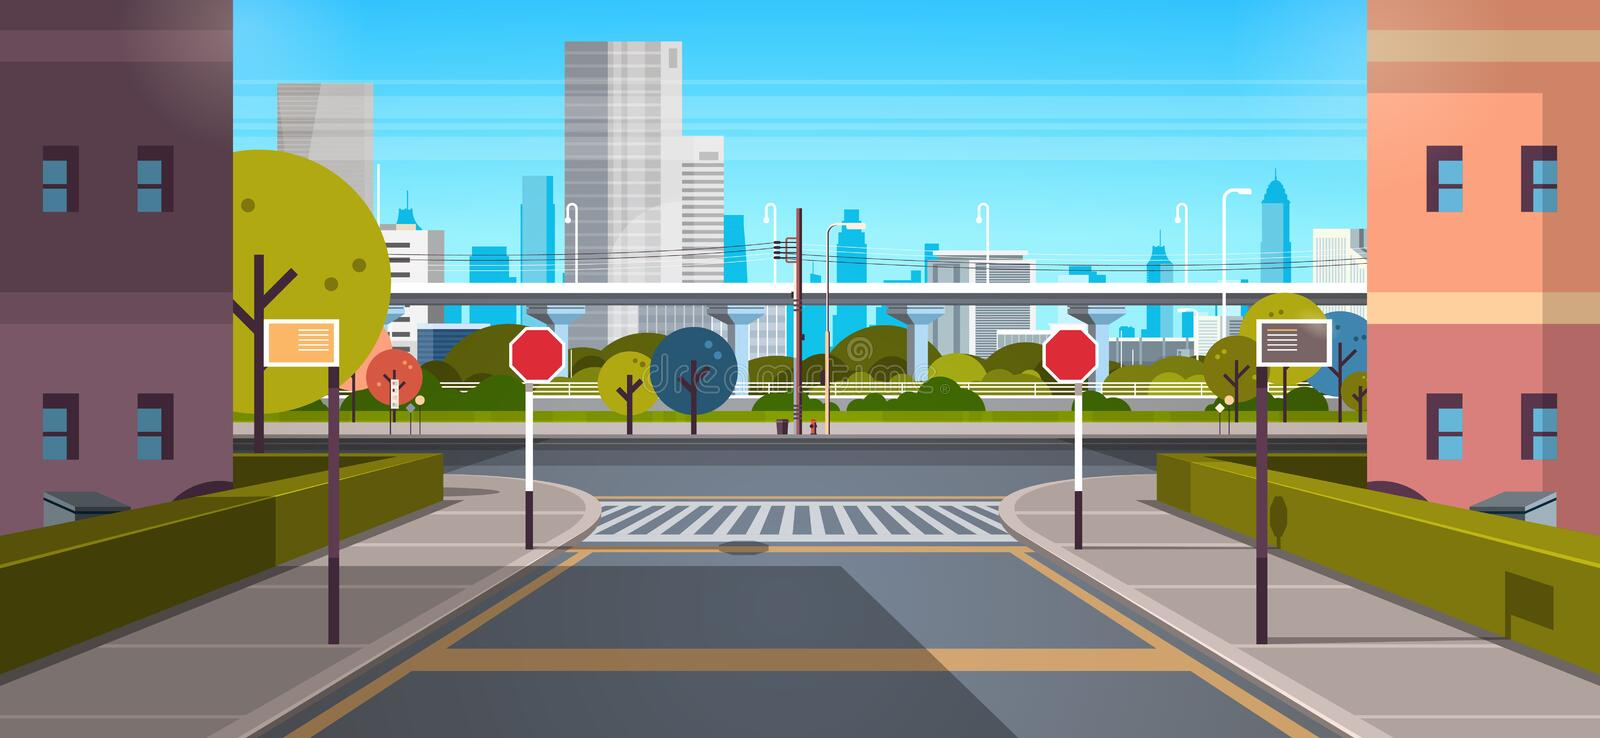 Modern city street architecture skyscraper buildings view empty downtown road urban cityscape background sunny day. Horizontal flat vector illustration royalty free illustration